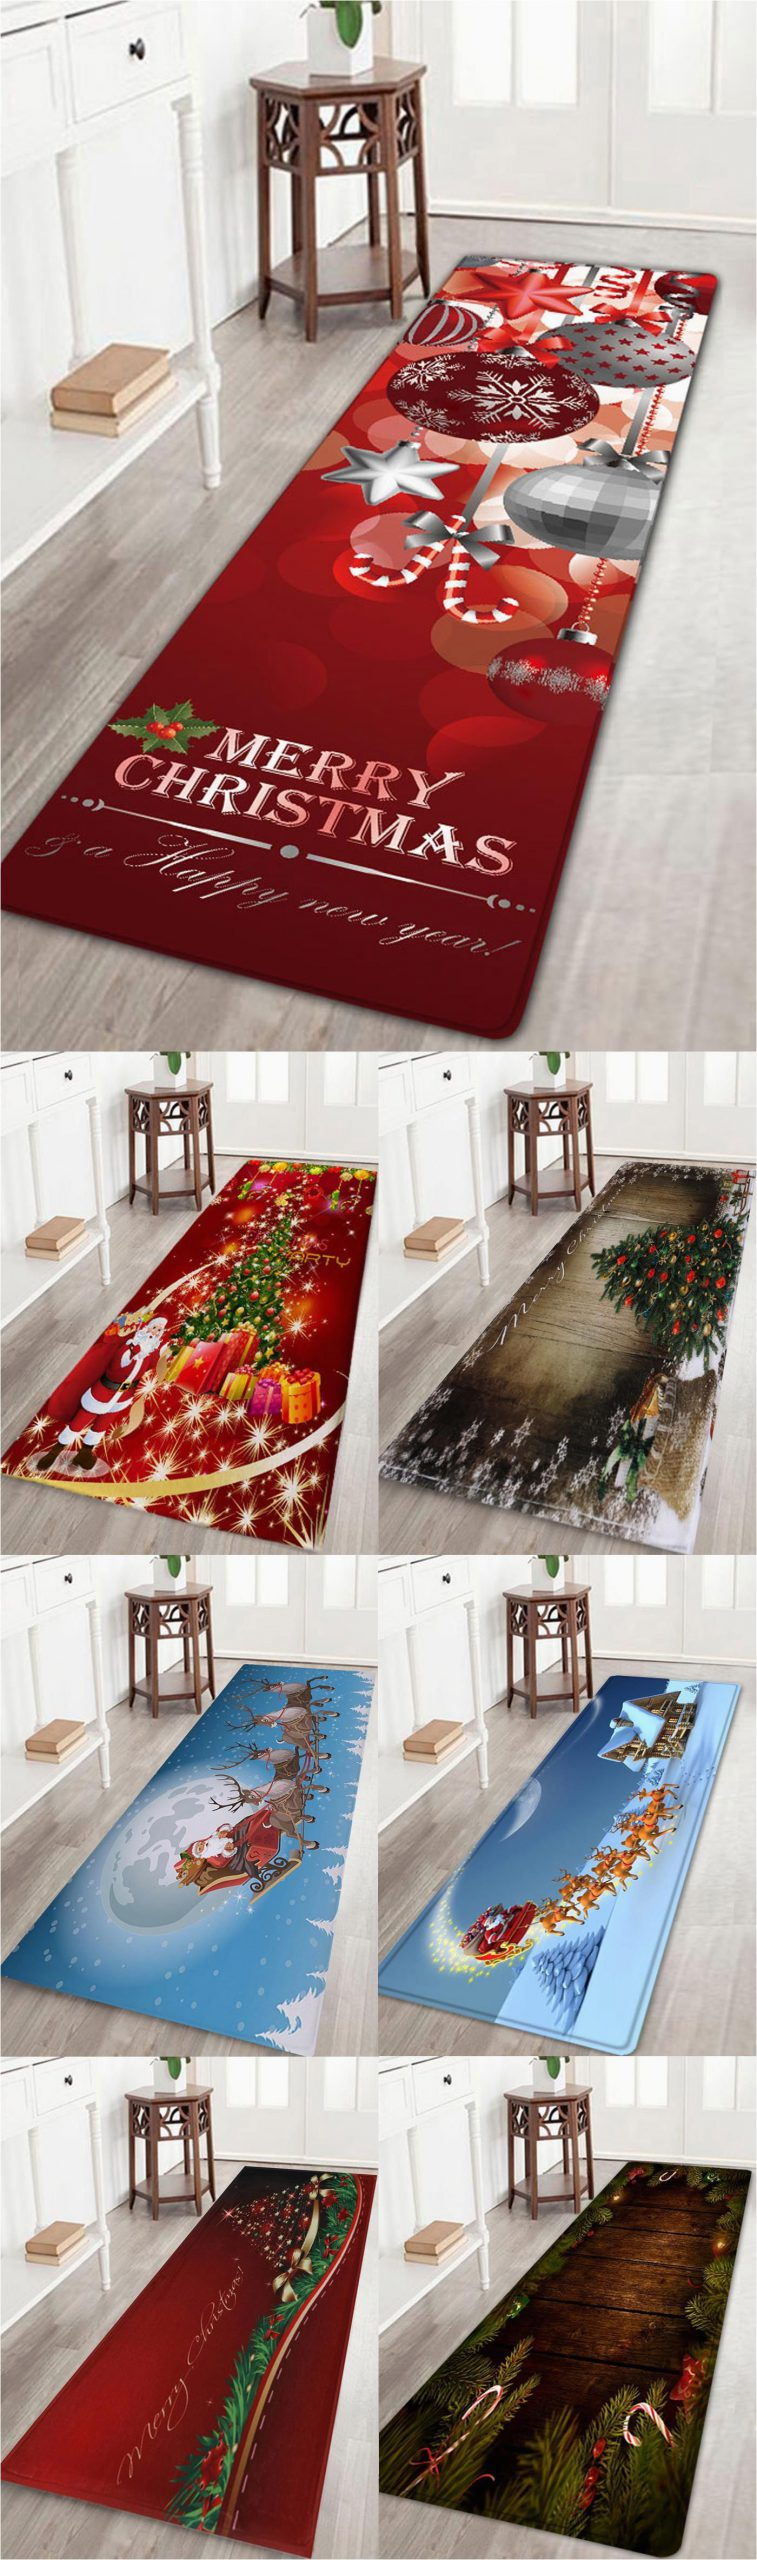 Round Christmas Bath Rugs Up to Off Rosewholesale Christmas ornaments Ball Print